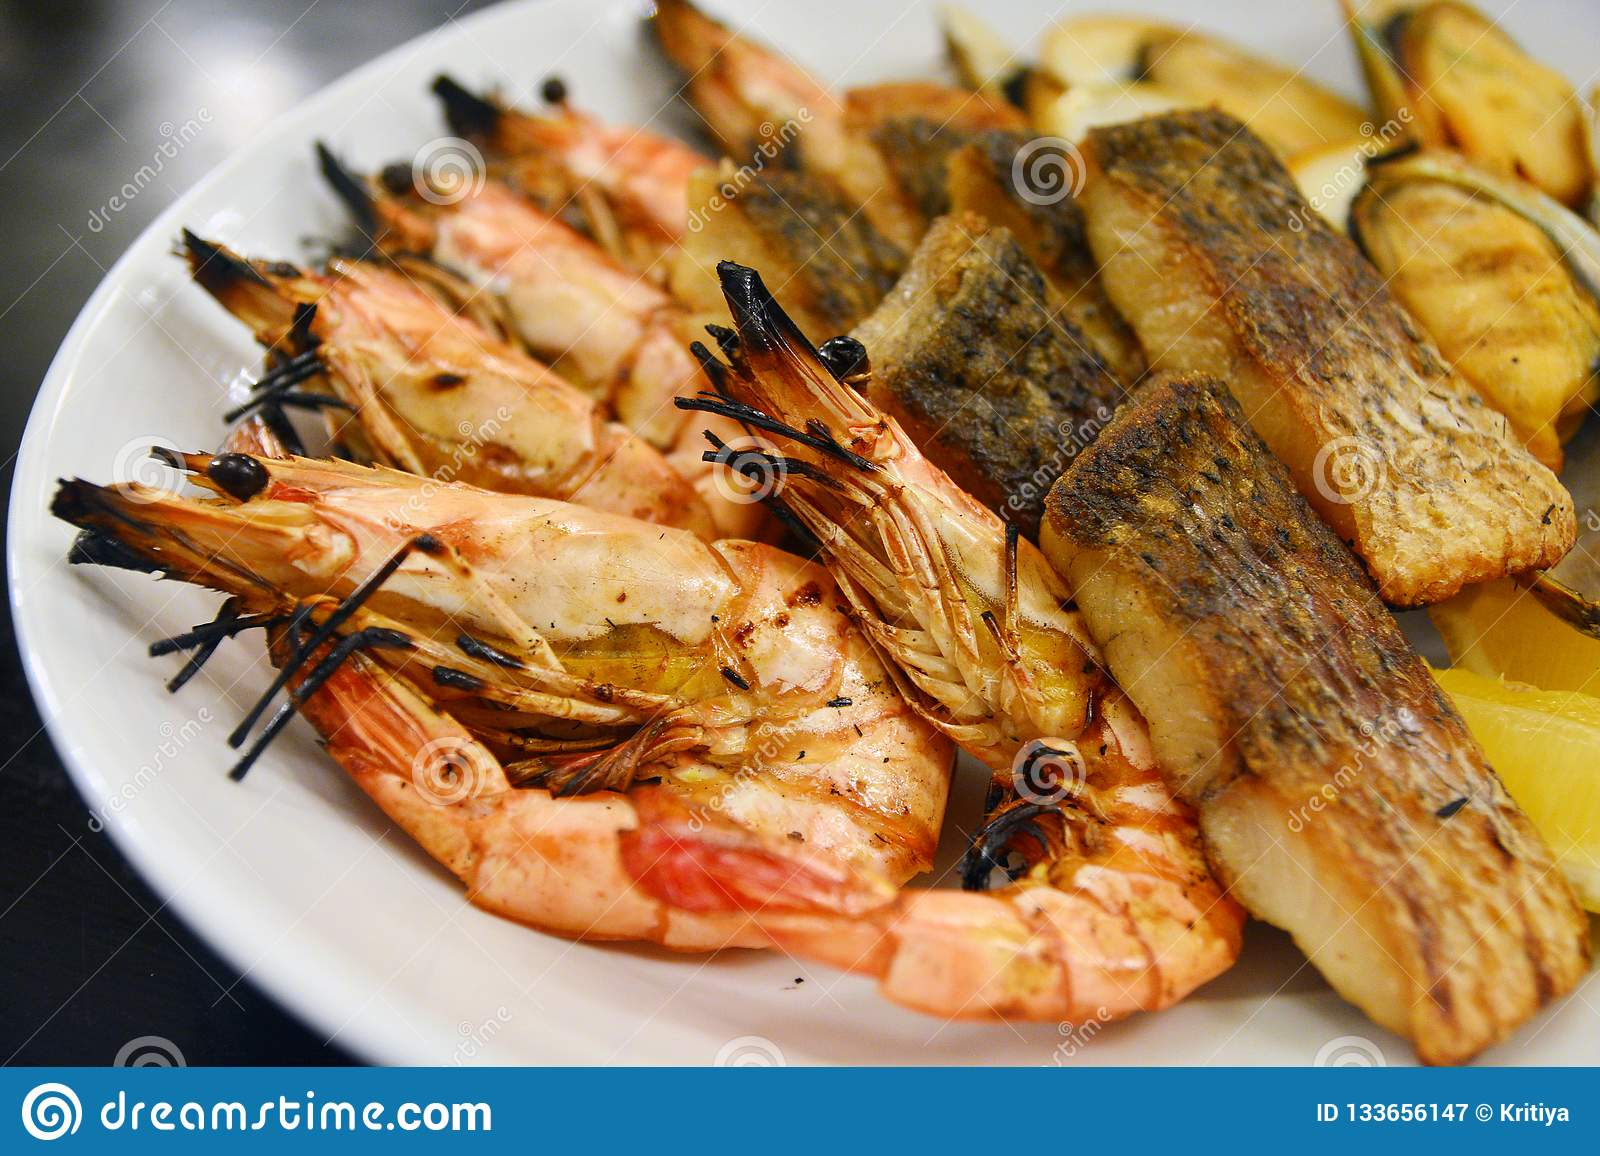 Close Up Of Delicious Grilled Seafood Platter Thai Food Style Stock Image Image Of Shell Seafood 133656147